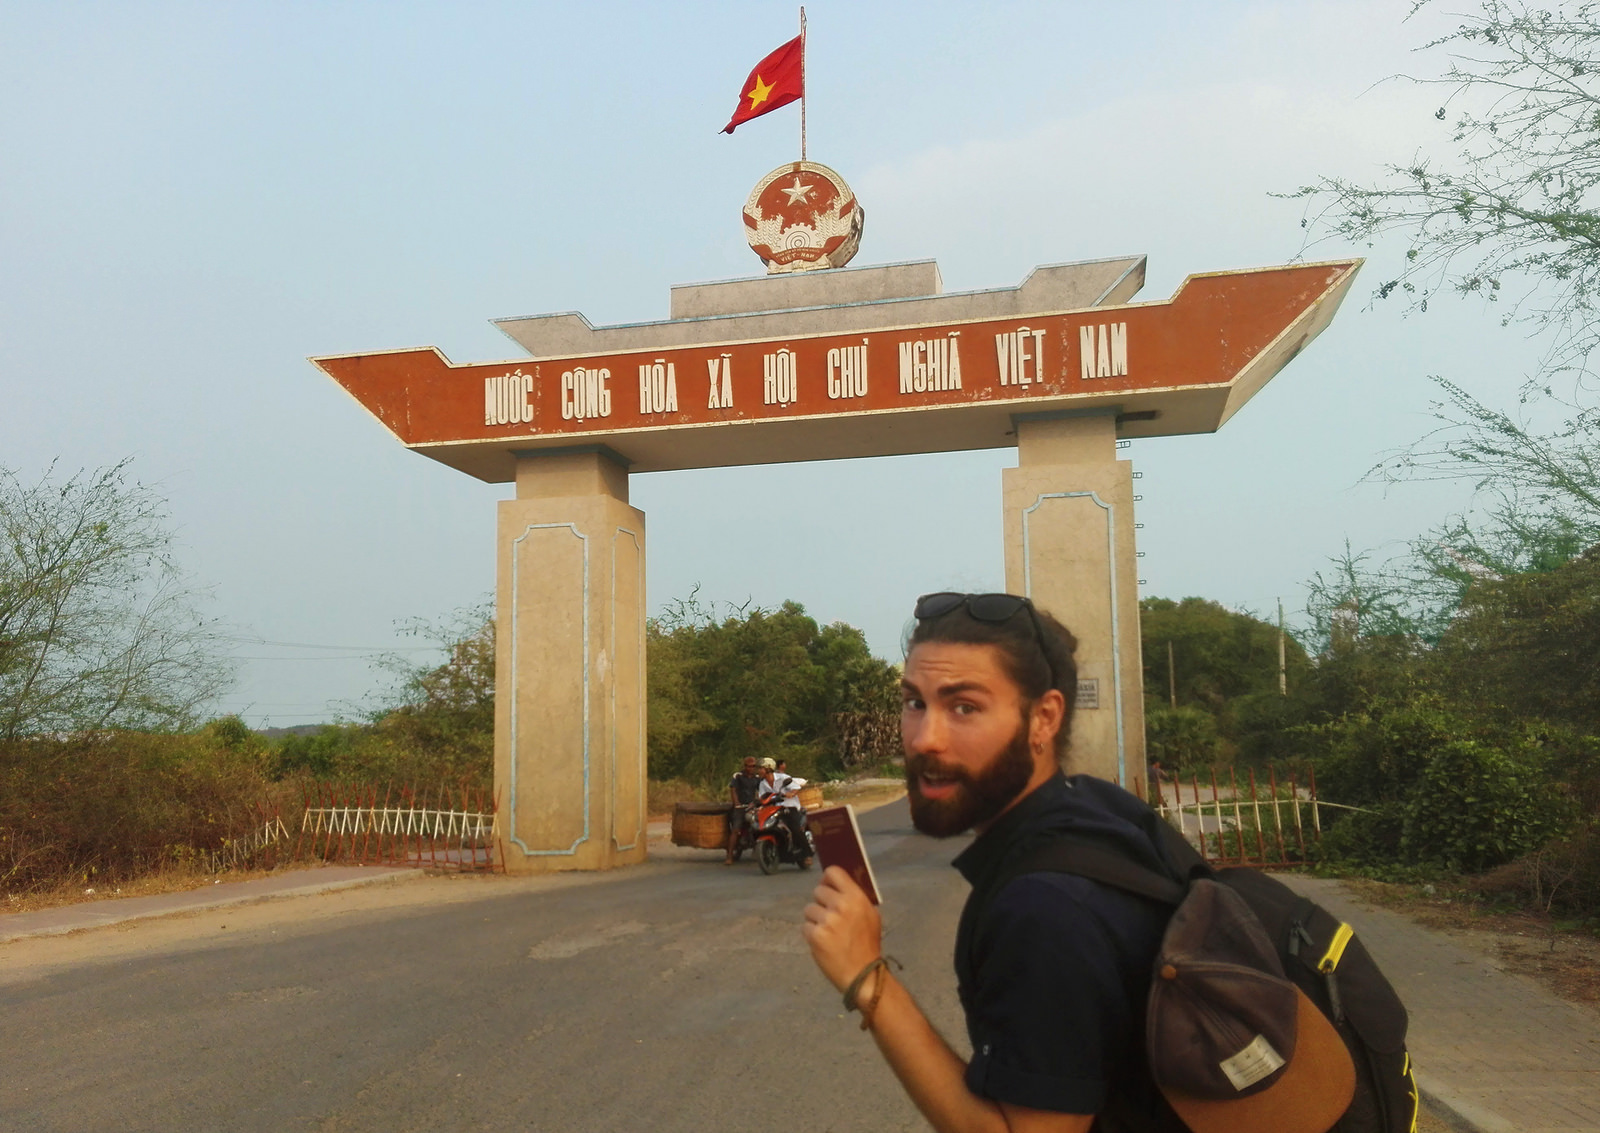 Mario crossing a vietnamese border